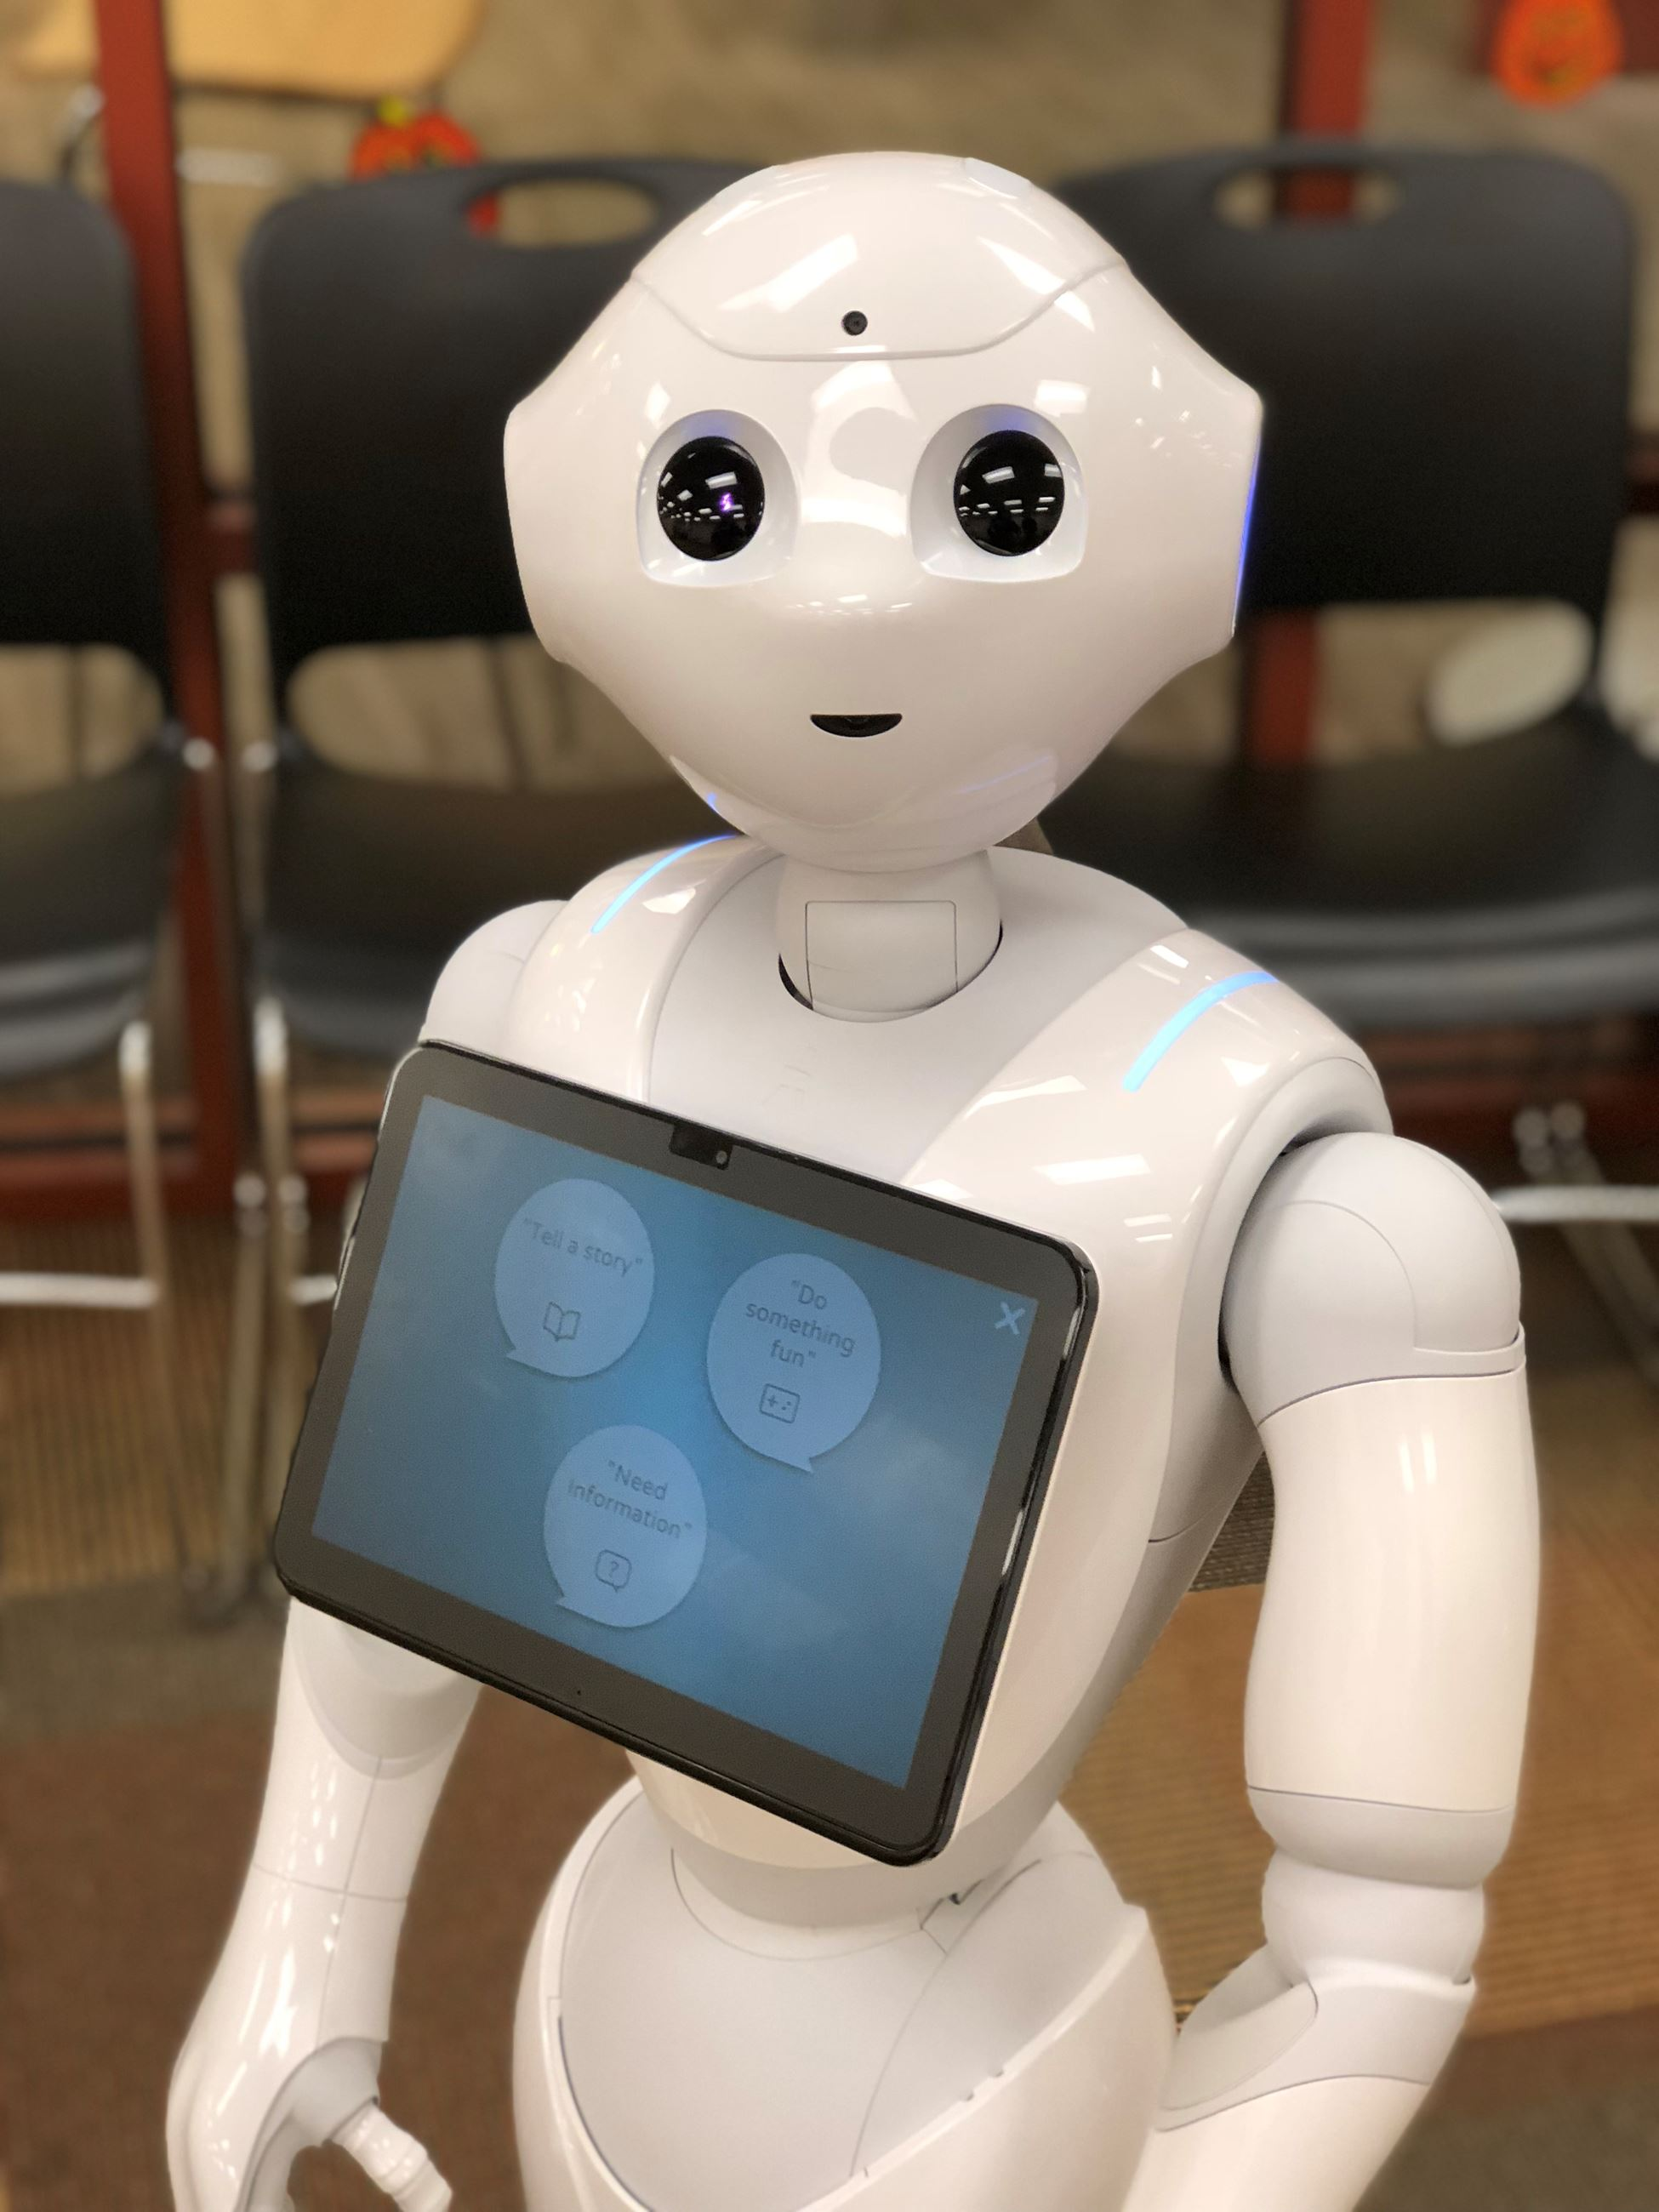 Pepper, the Humanoid Robot